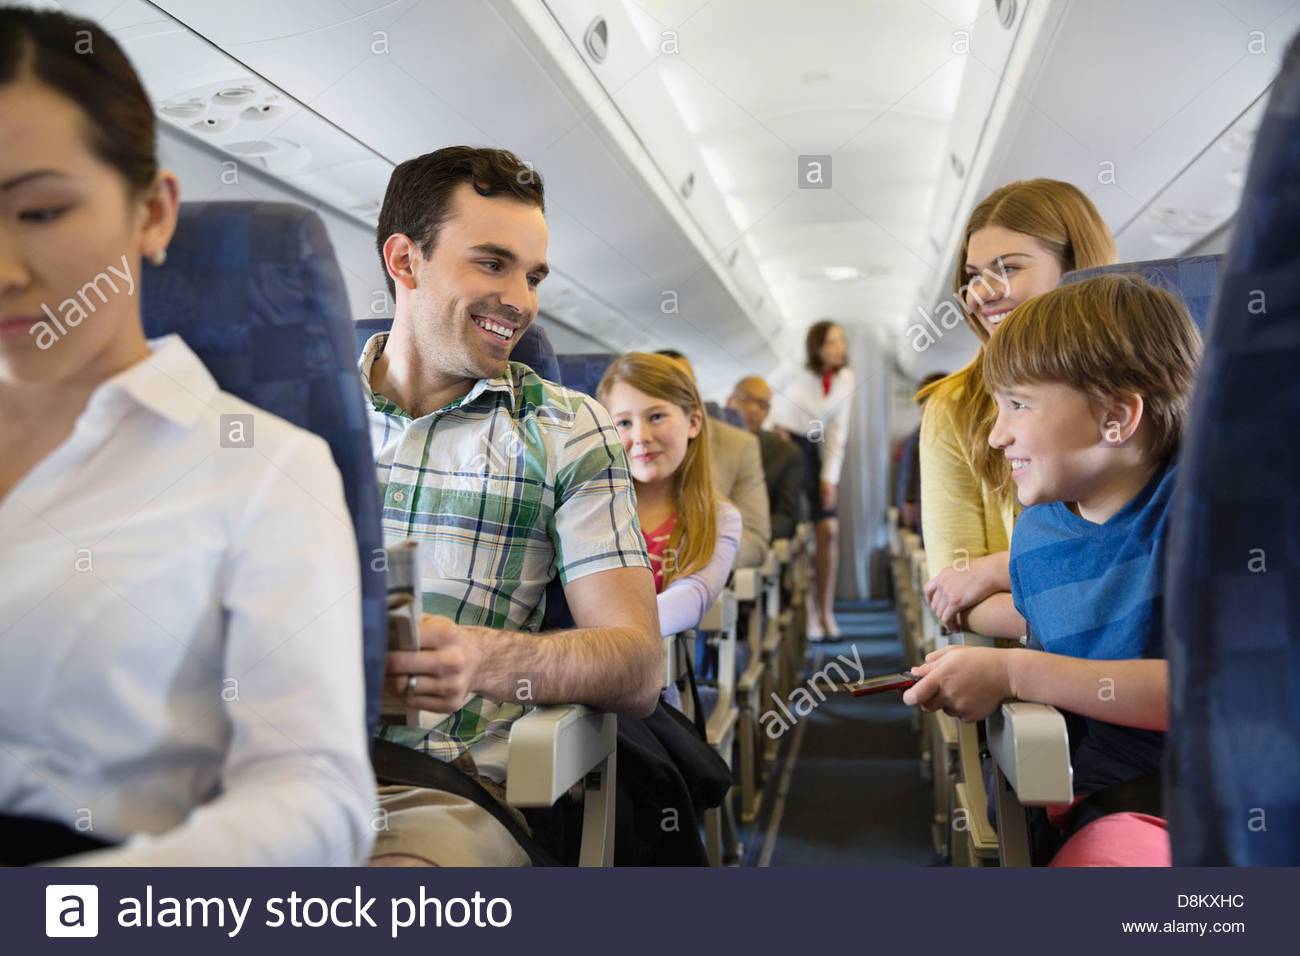 Smiling family voyageant en avion Photo Stock